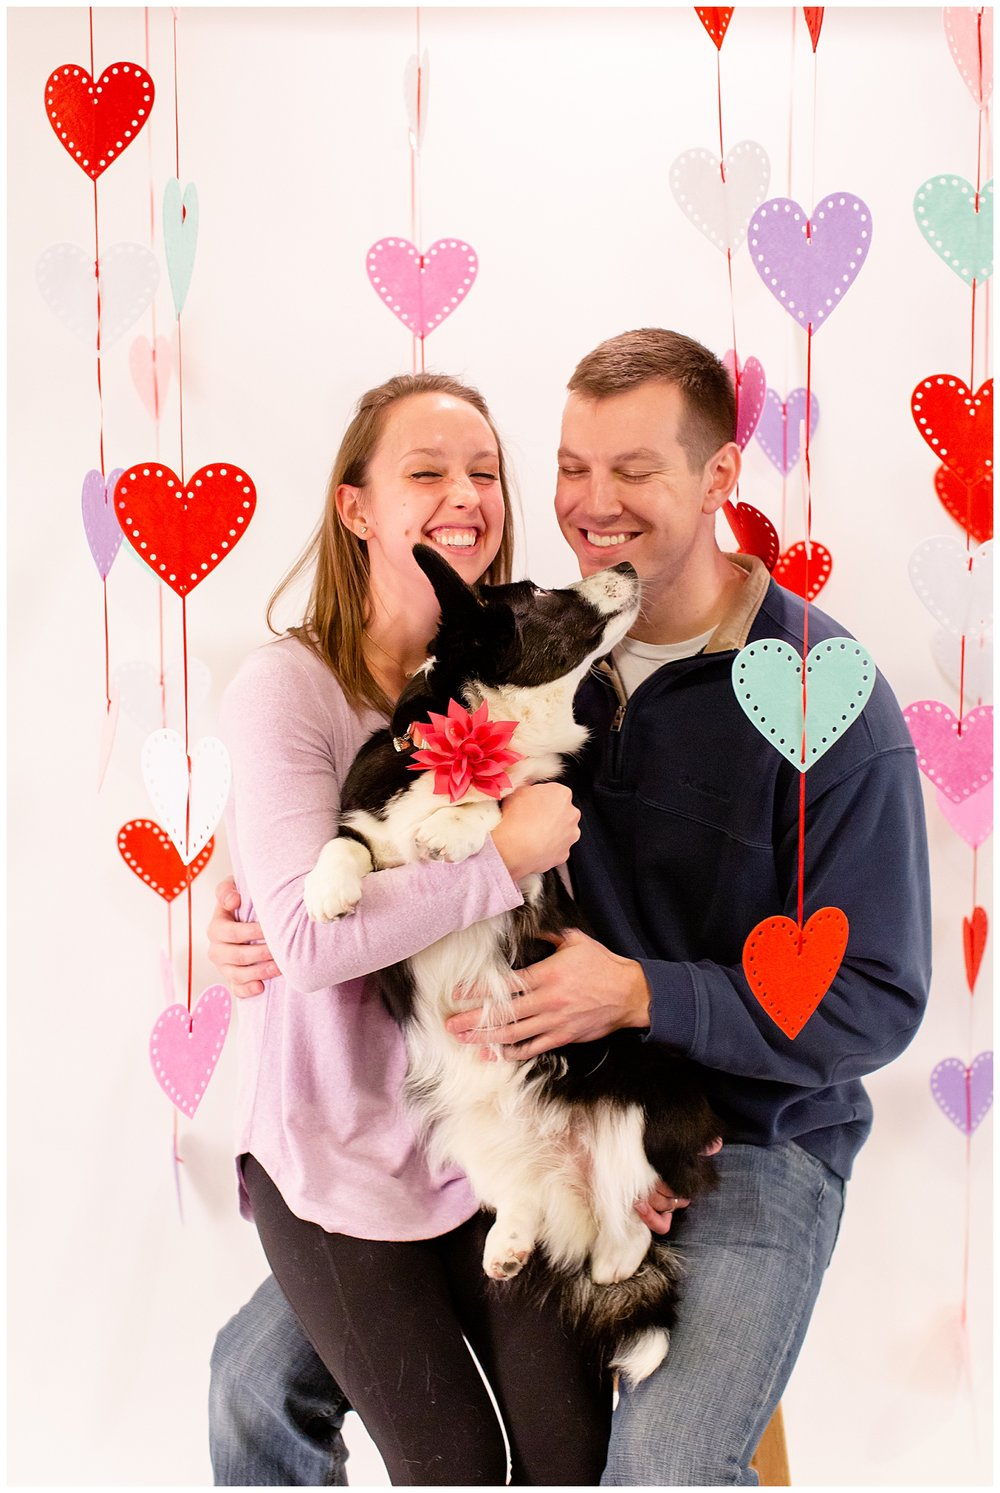 emily-belson-photography-couple-dog-valentine-photoshoot-03.jpg